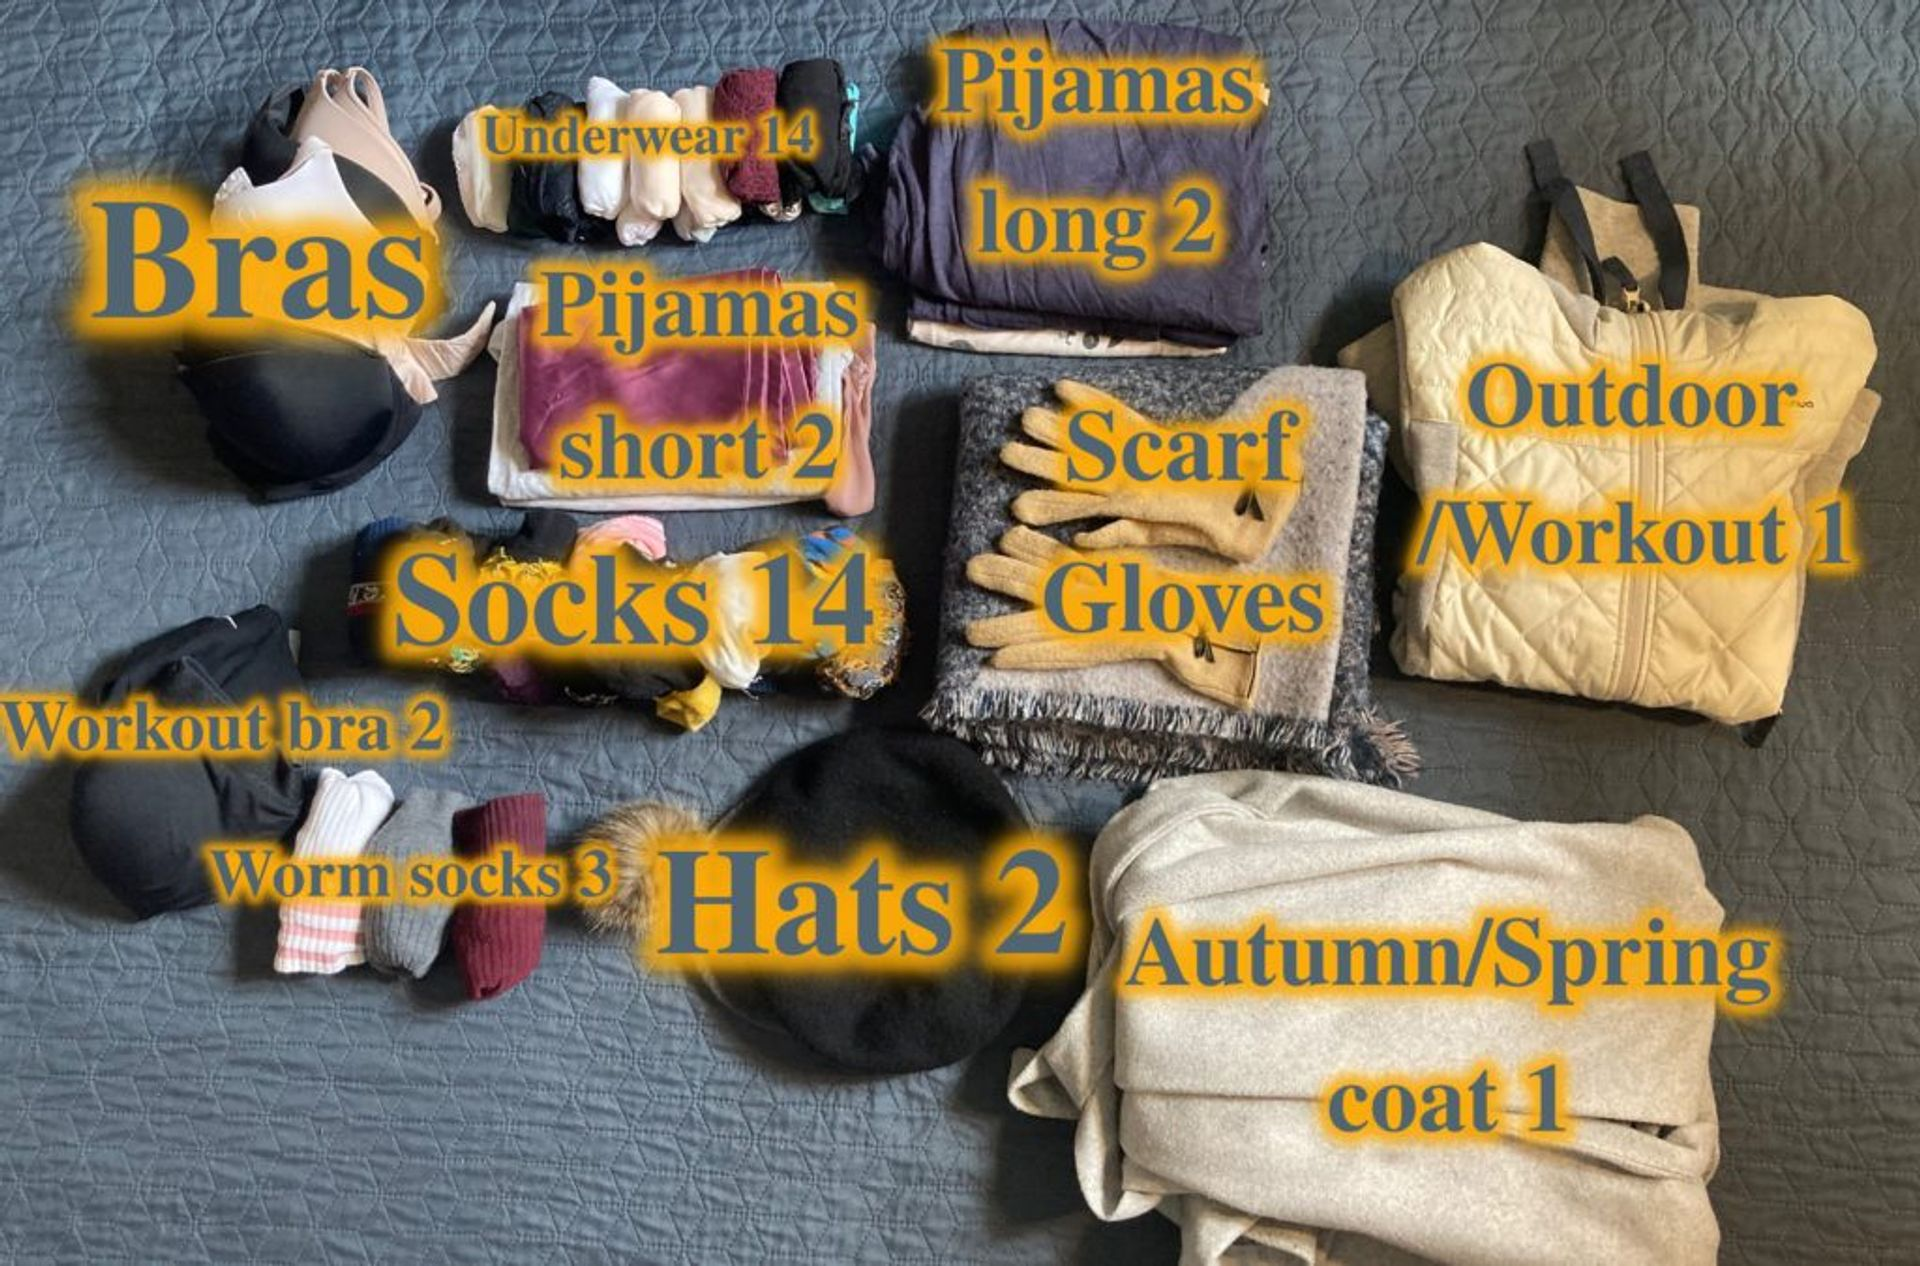 A mixture of clothing including socks, hats, scarves, gloves and underwear.